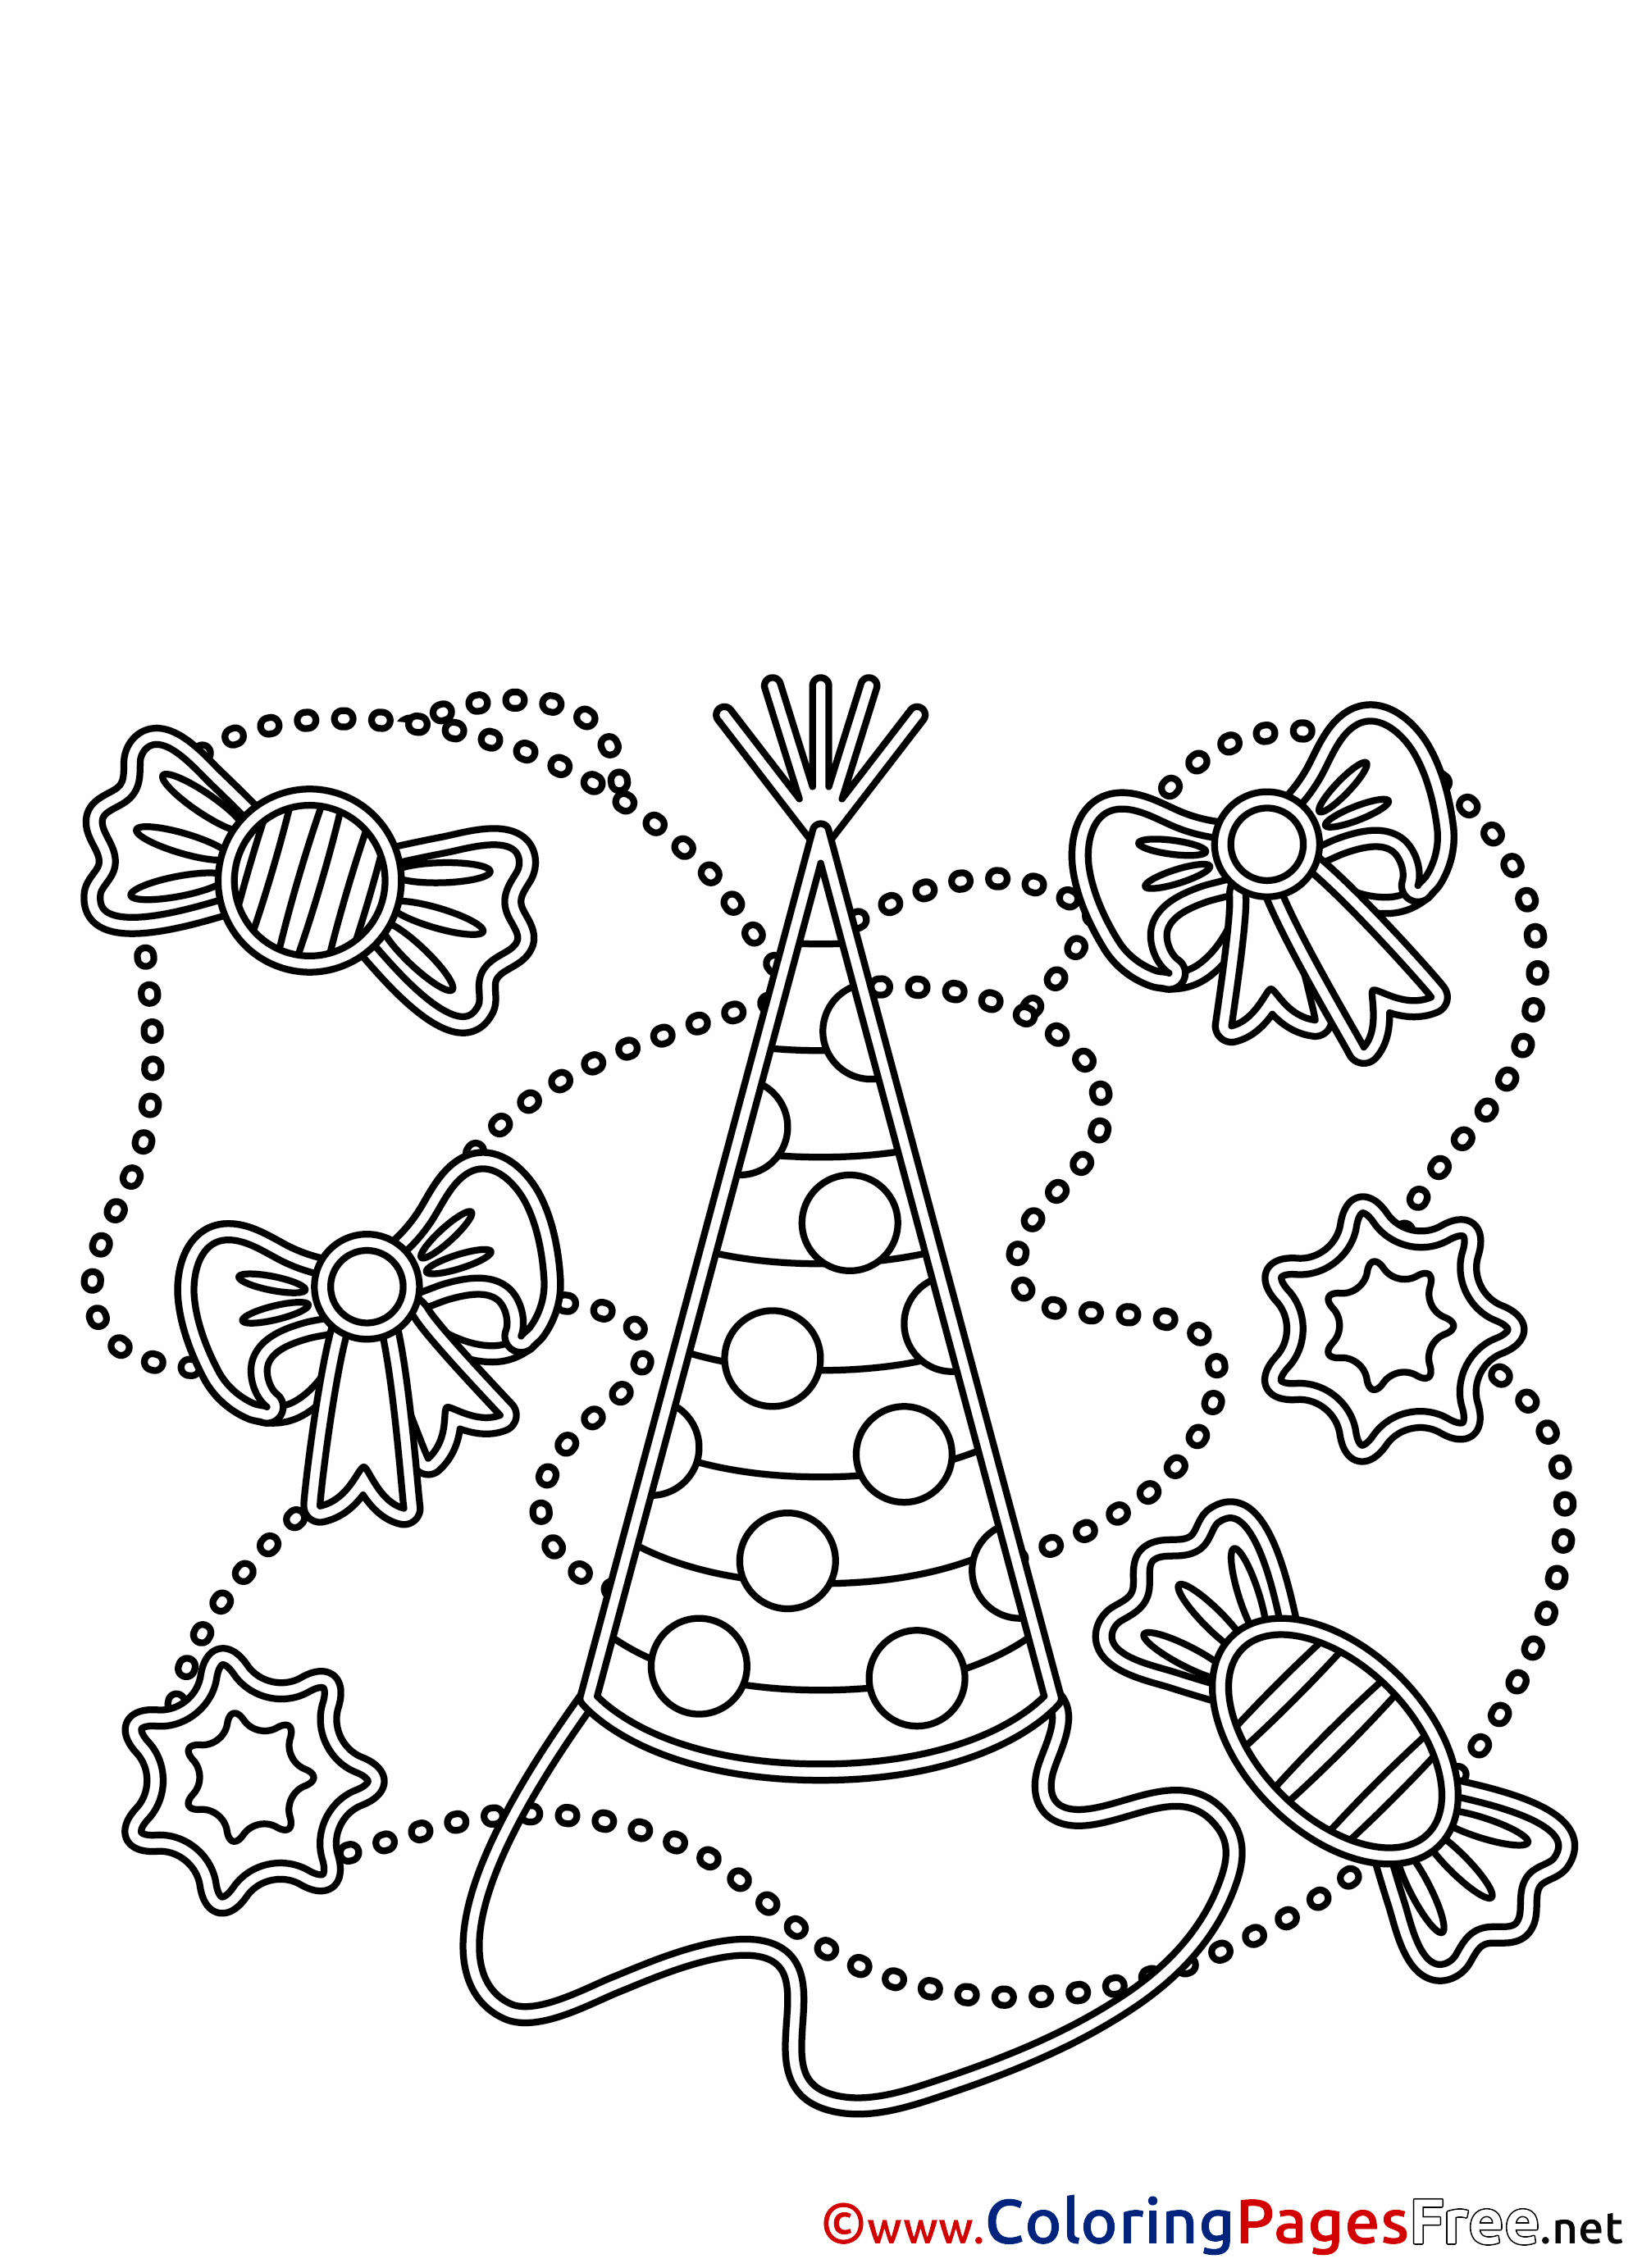 Party hat download happy birthday coloring pages for Coloring pages of birthday hats